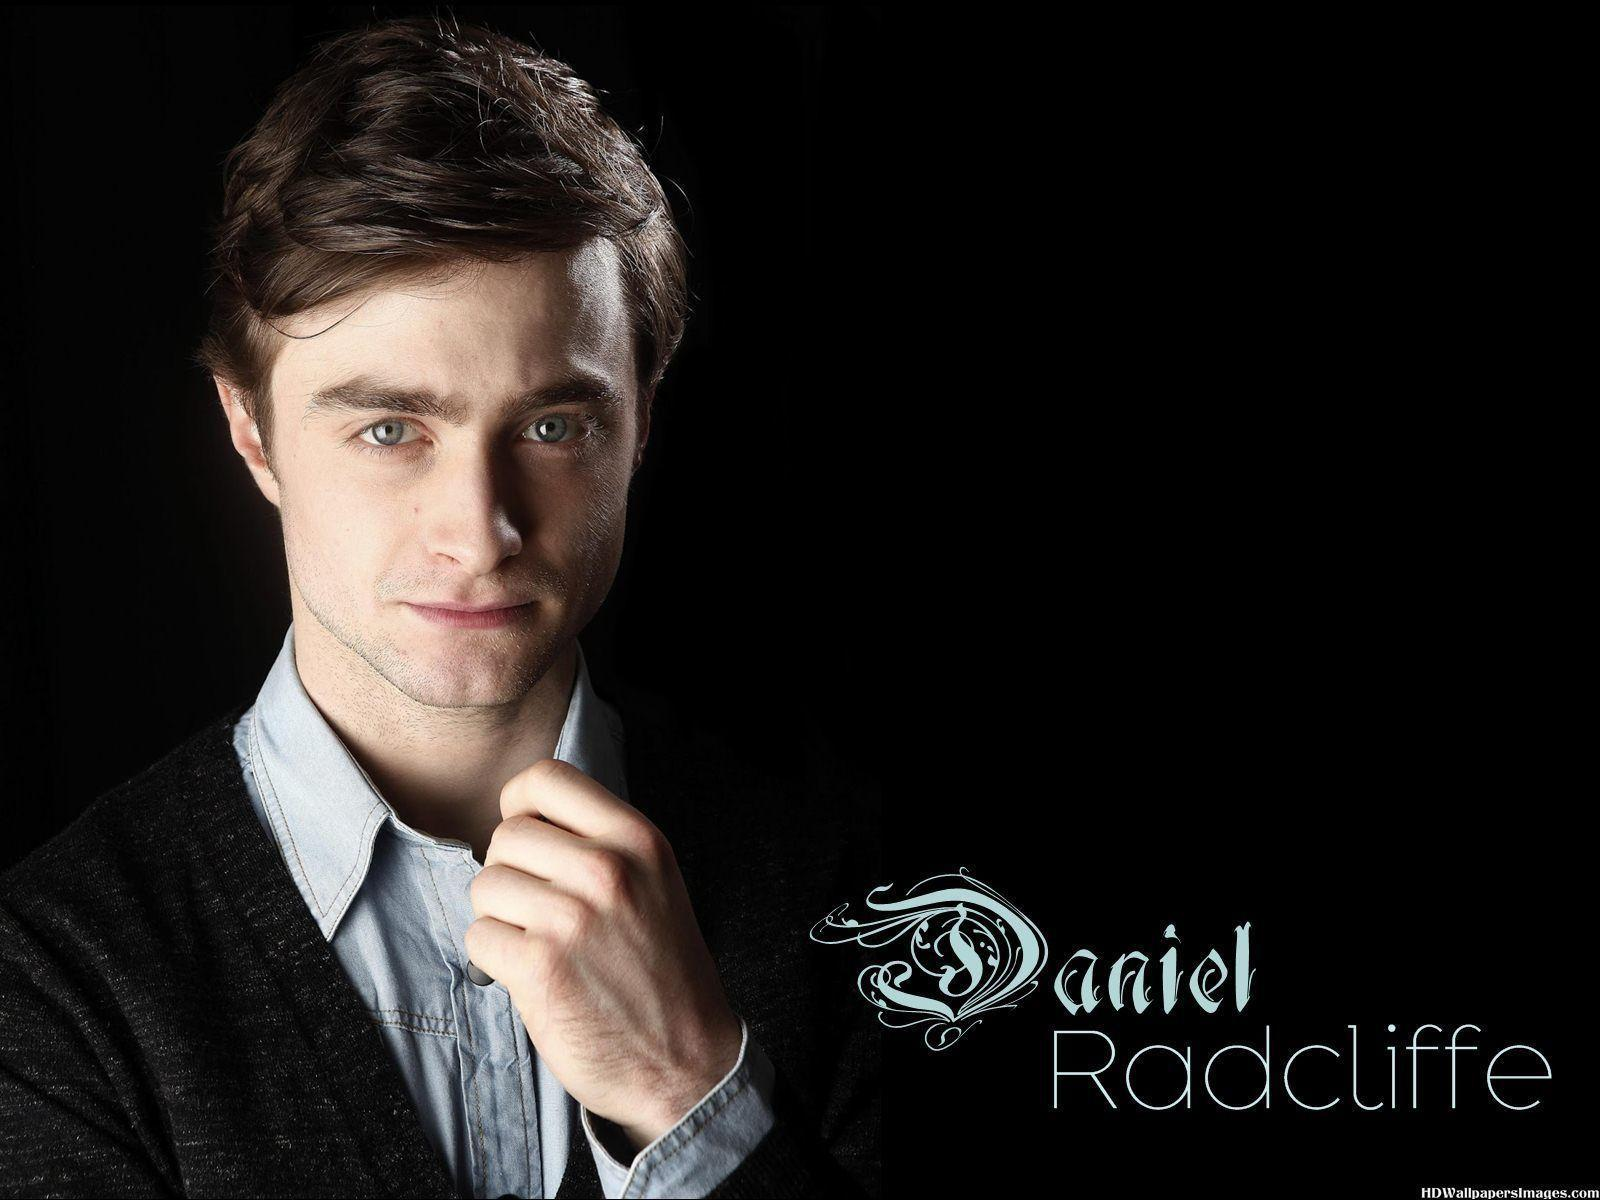 radcliffe hd wallpapers num2 - photo #32